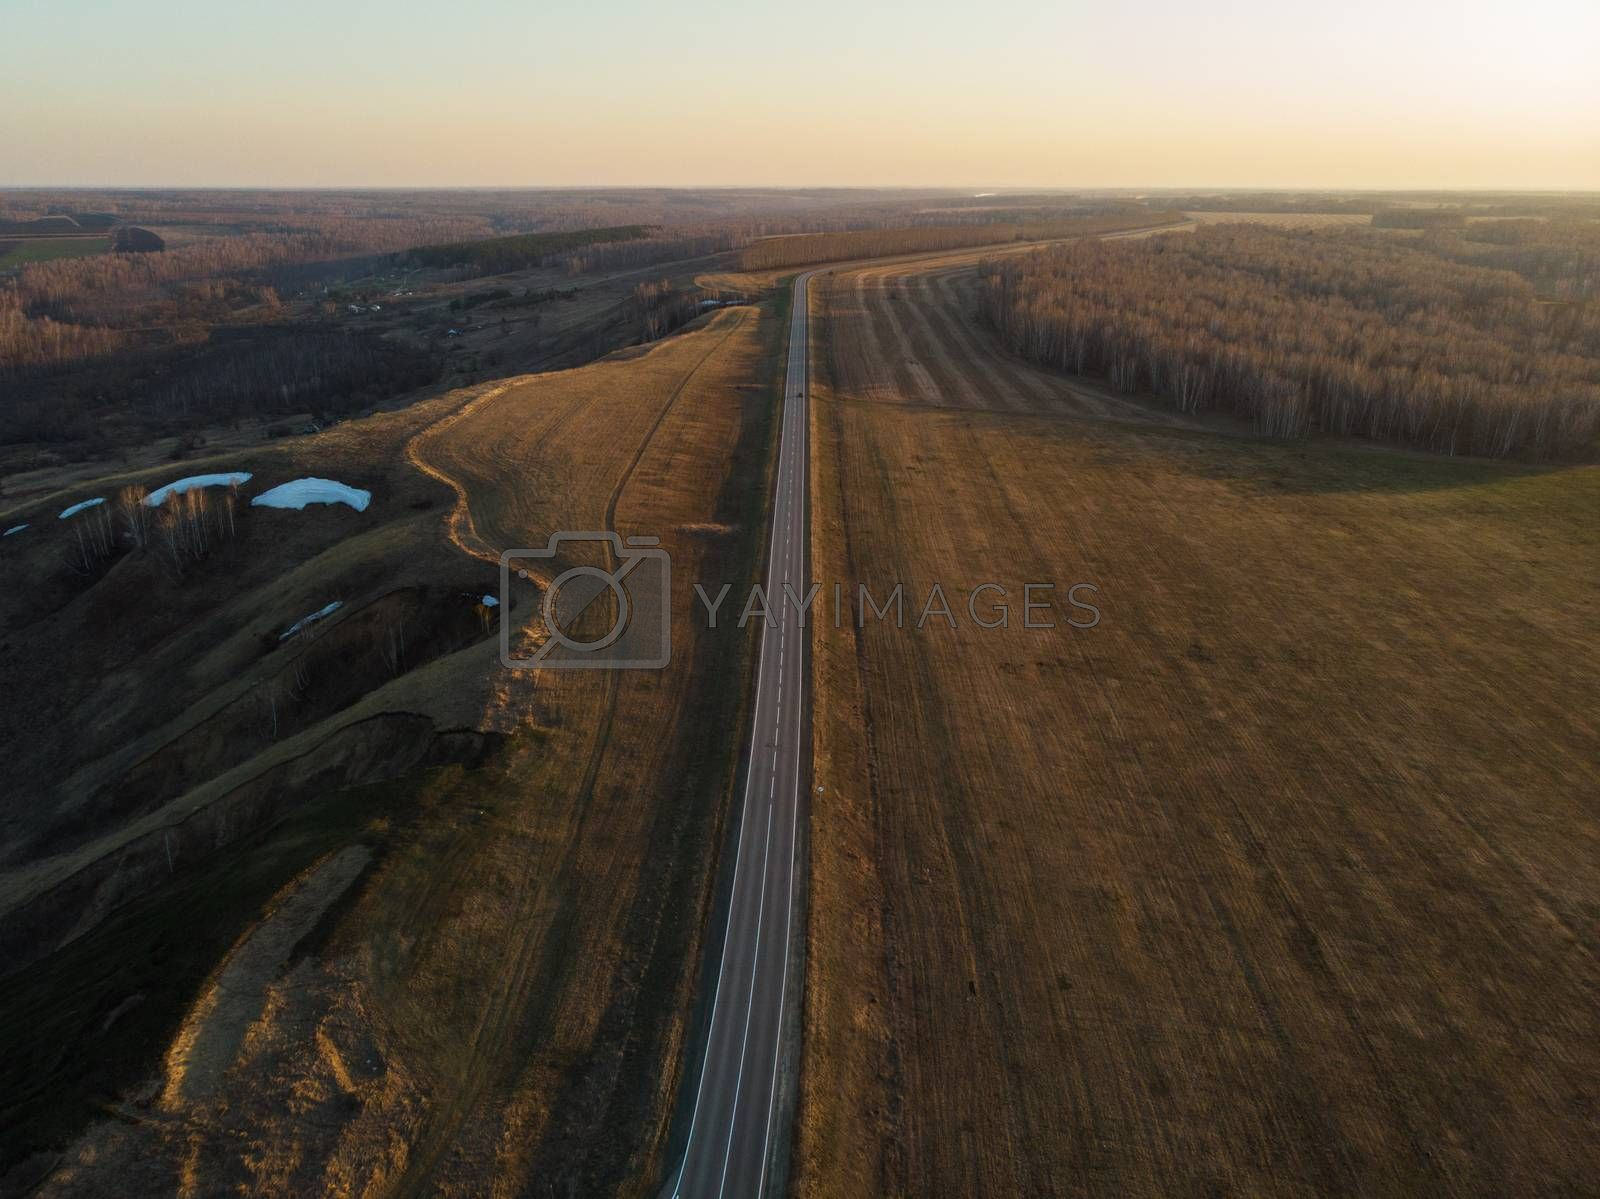 Aerial view of a road in summer landscape